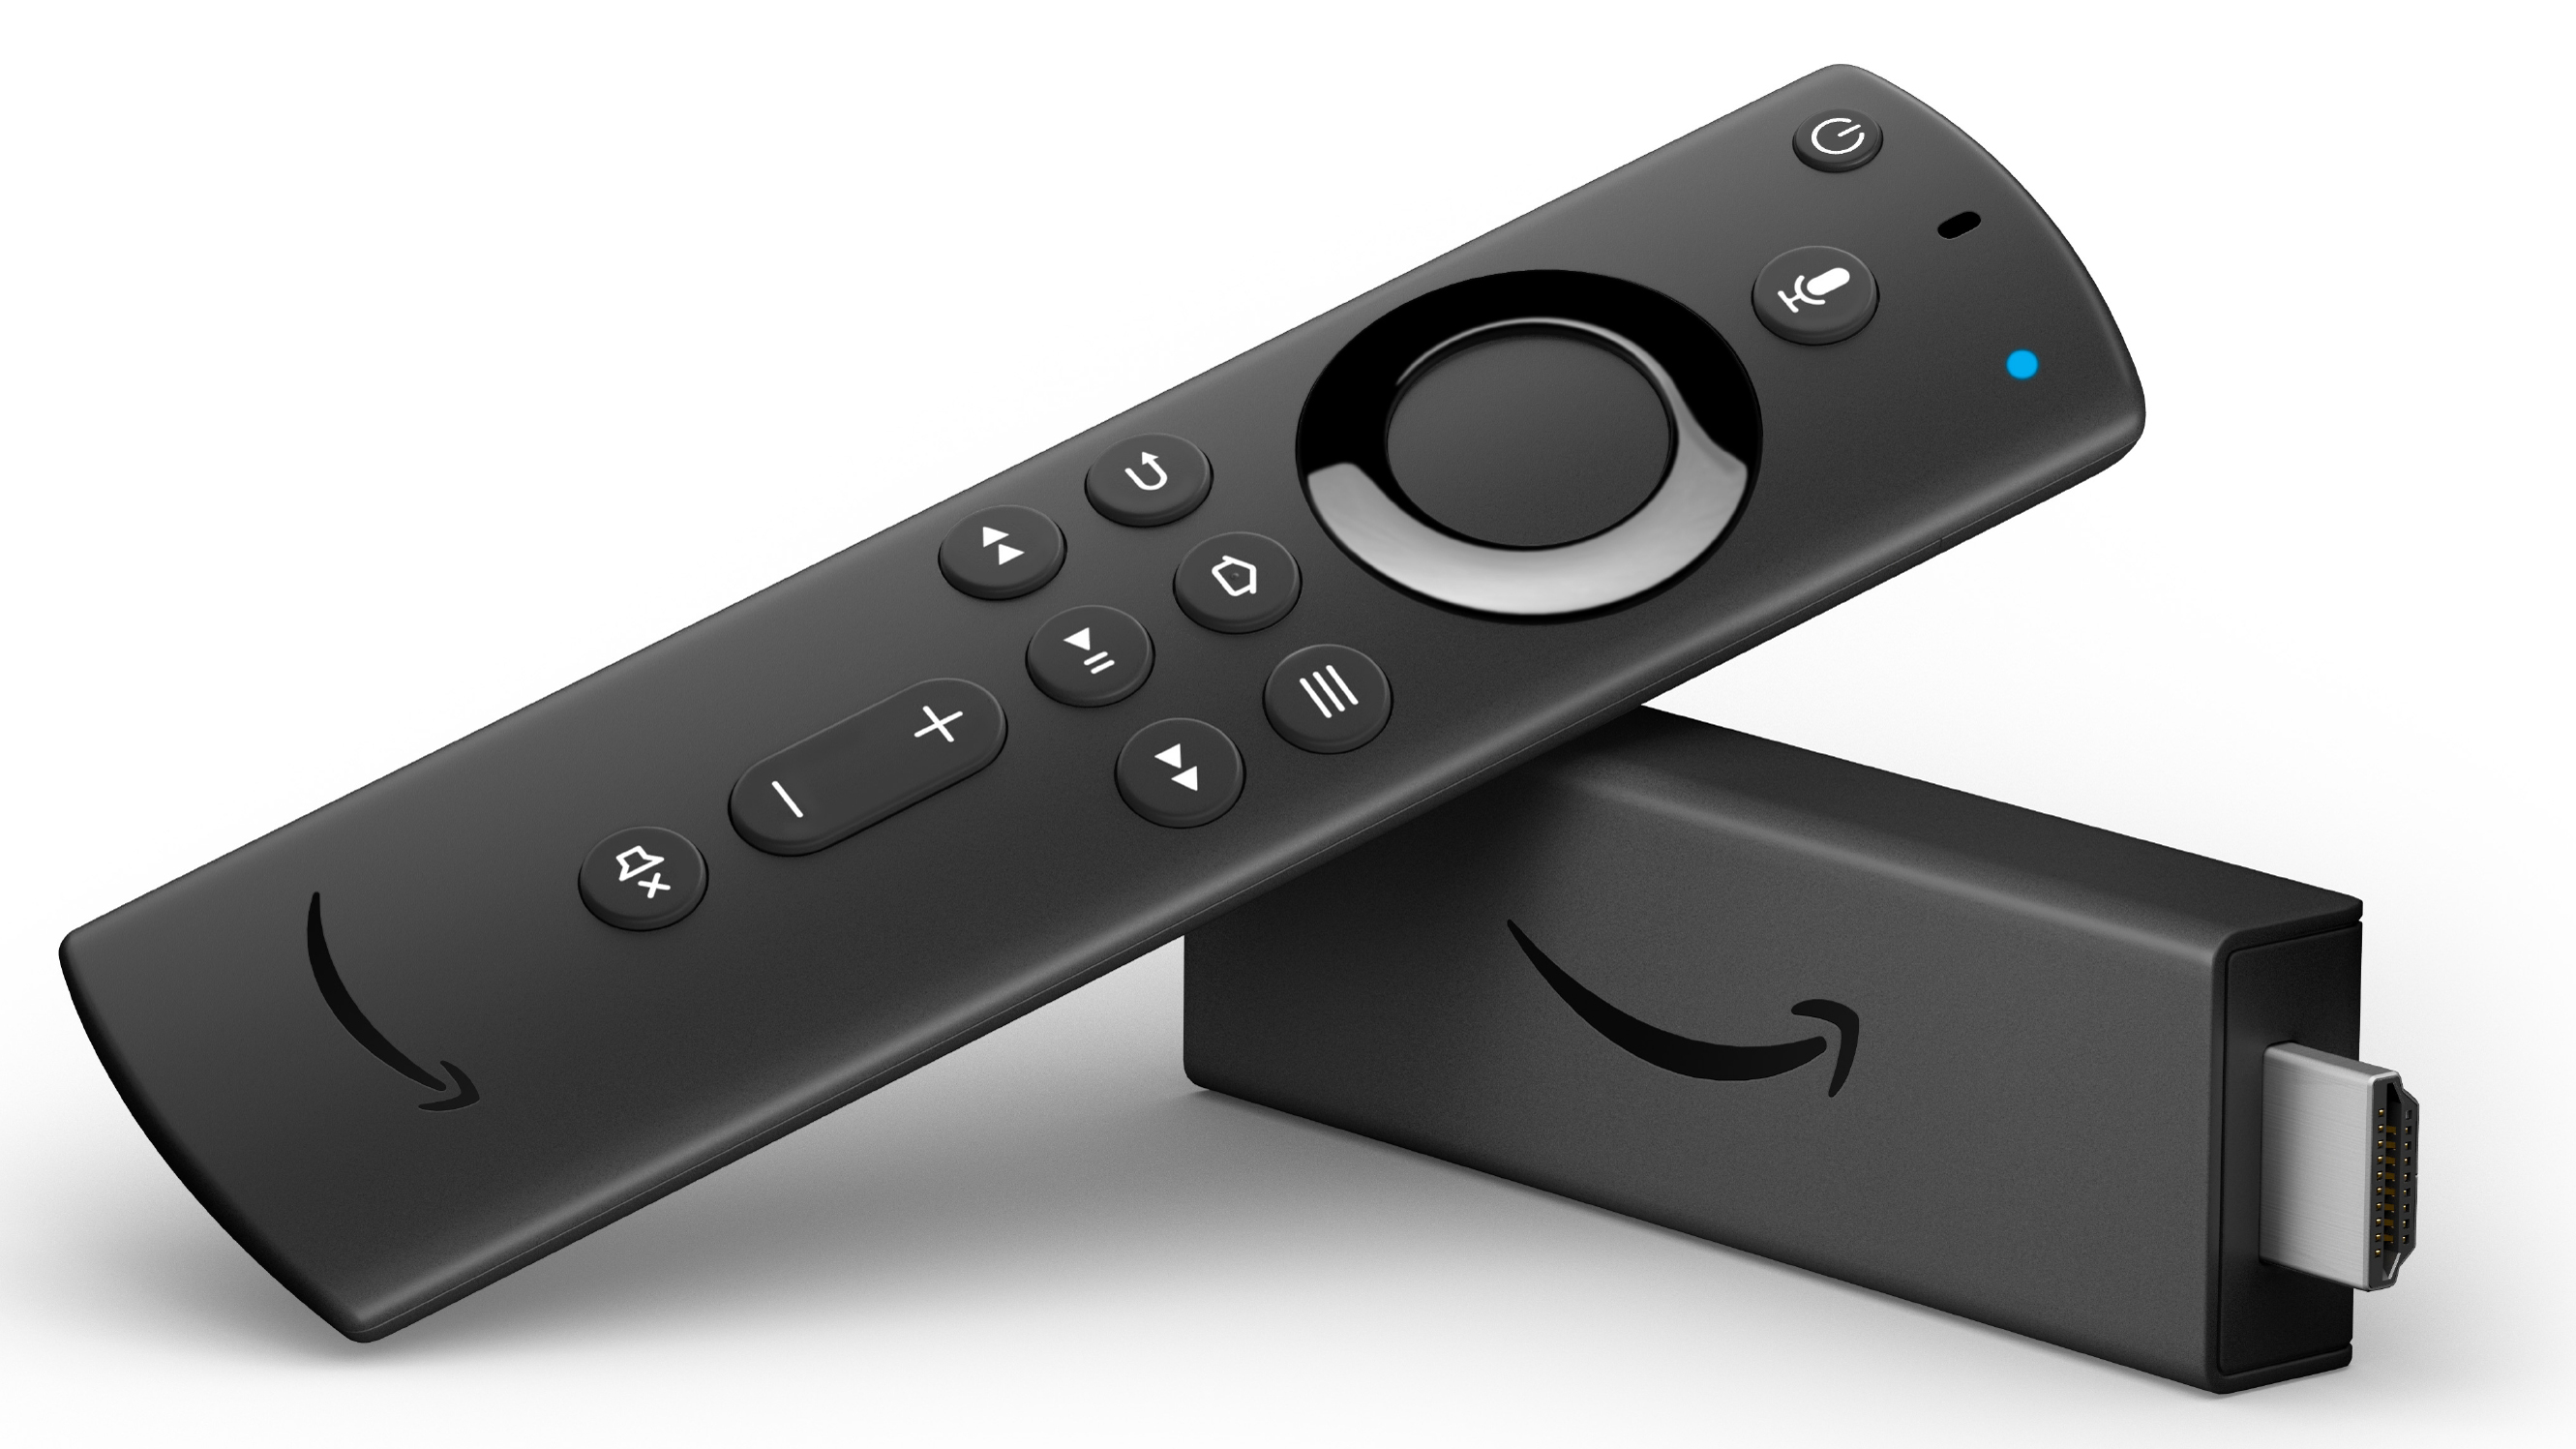 Amazons updated Fire TV Stick is fast, cheap, and perfect for Prime members